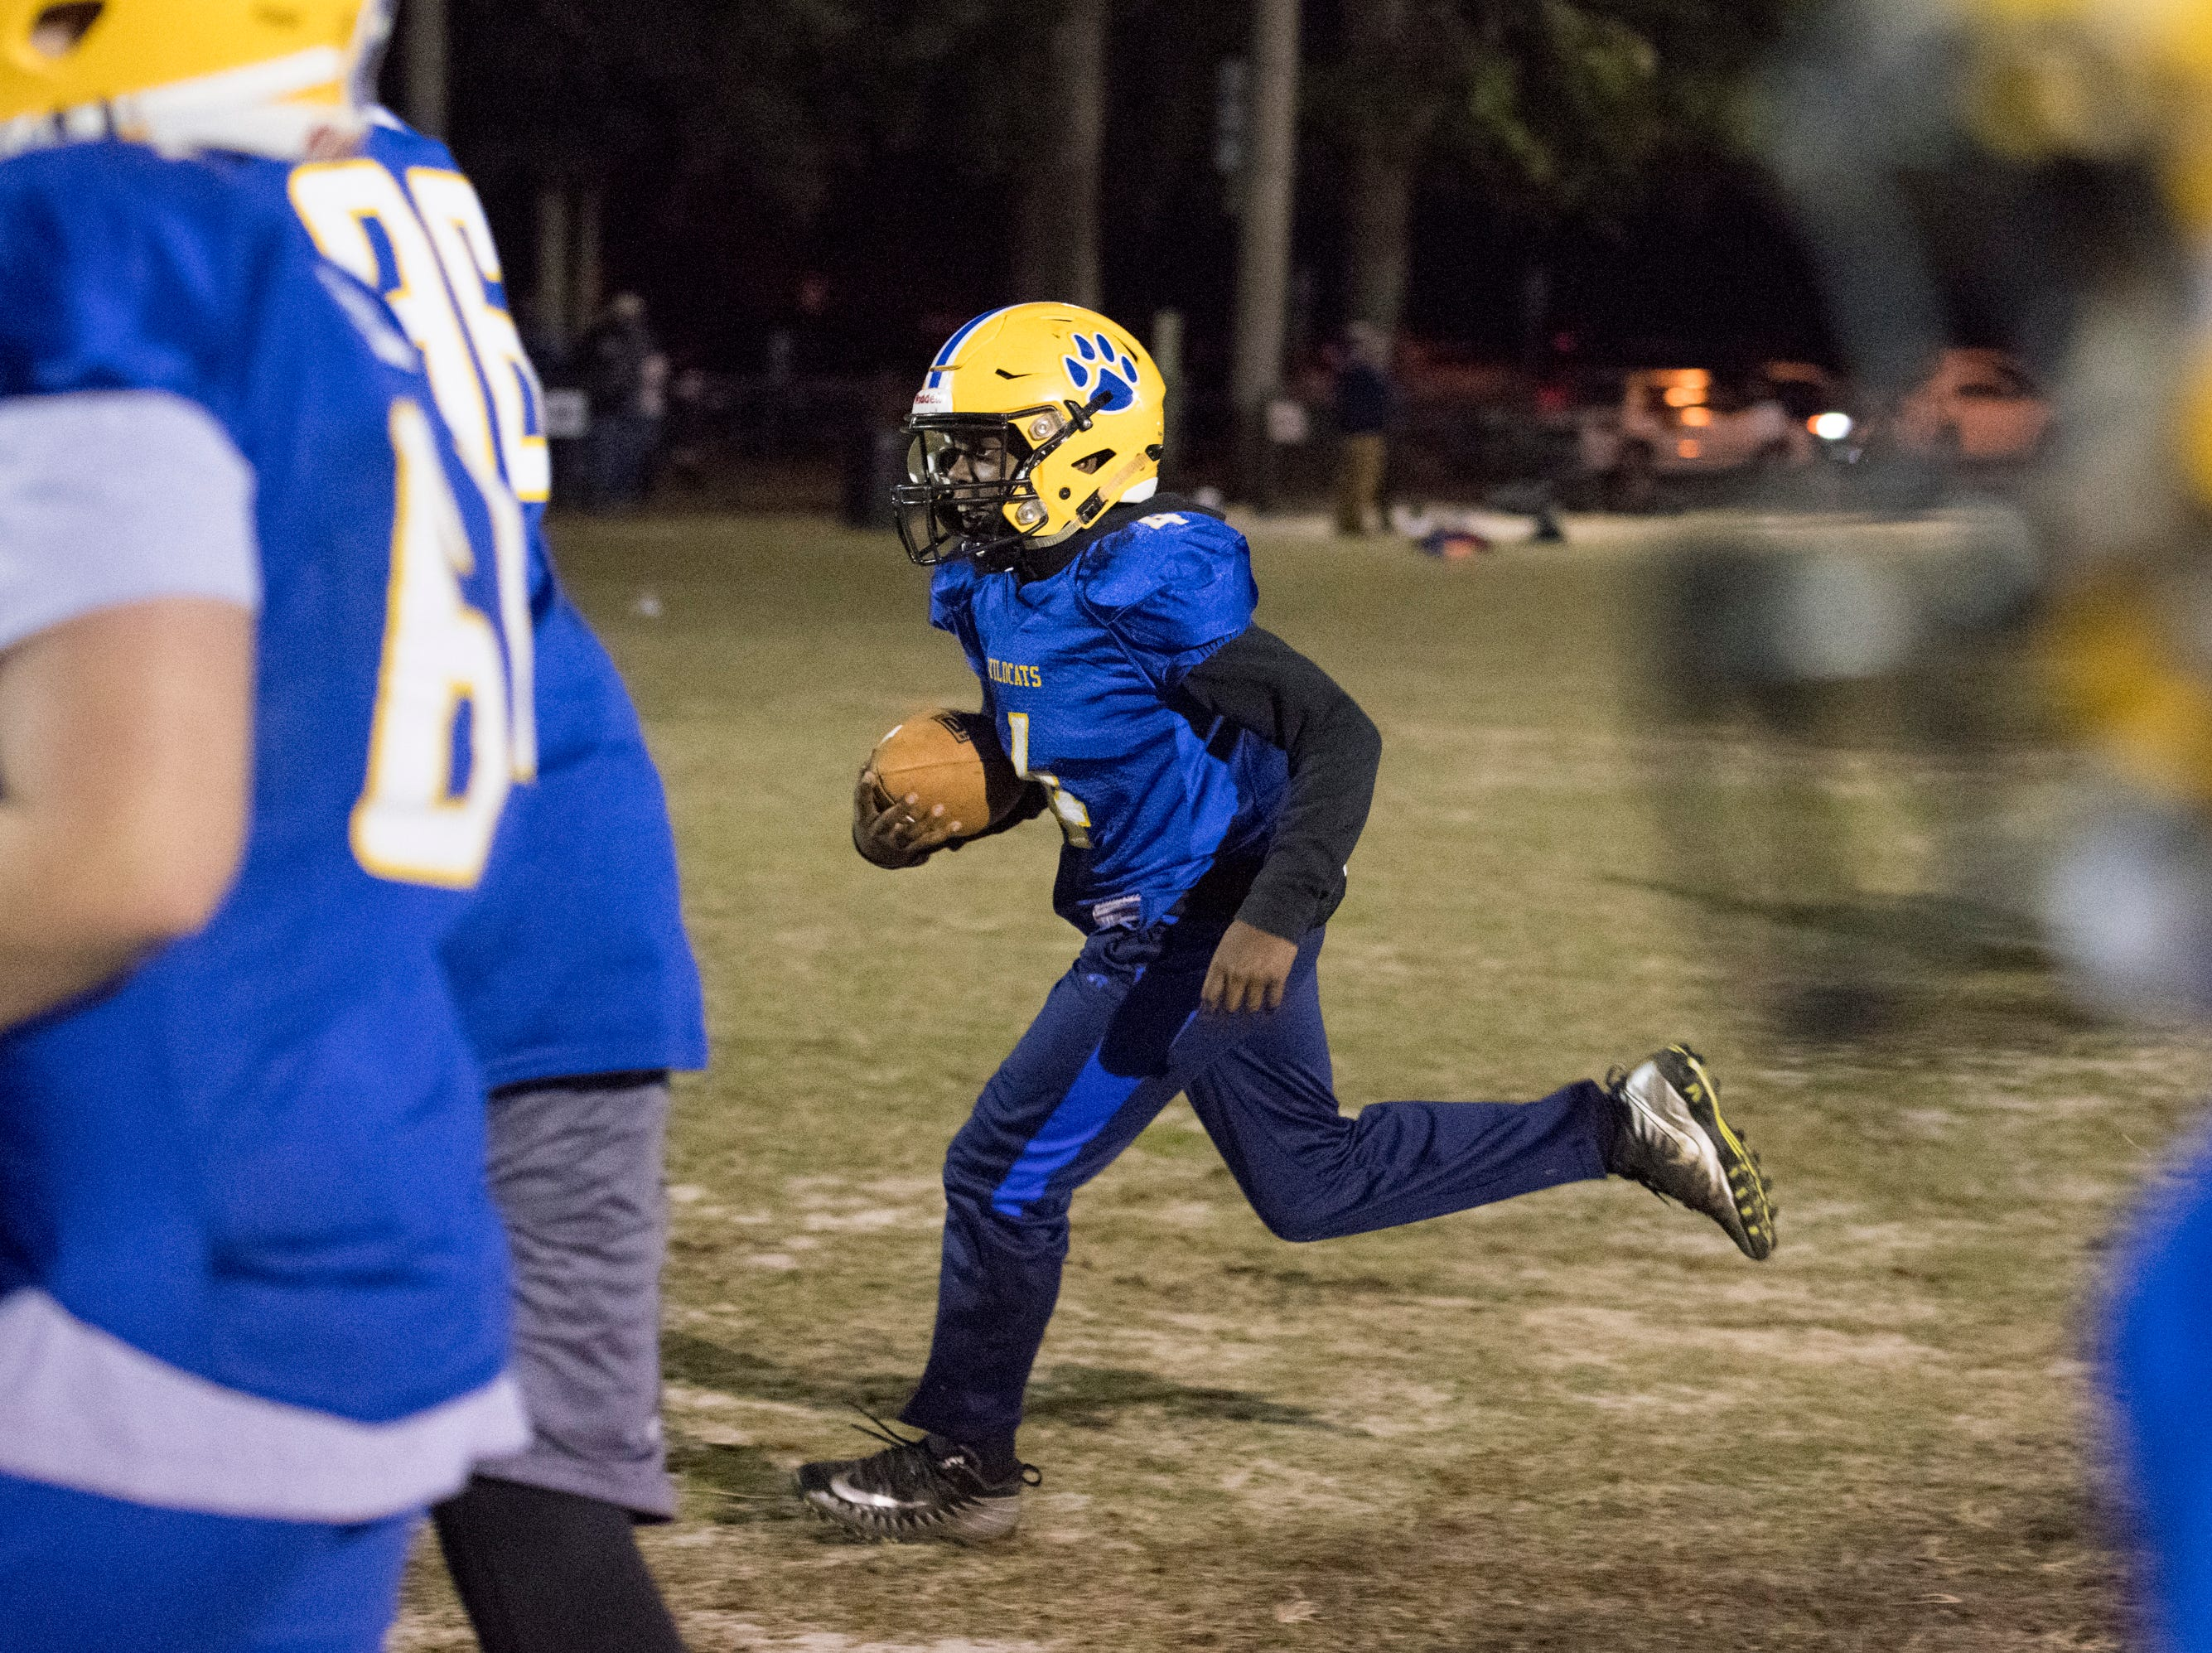 Nigel Nelson (4) carries the ball as the NEP 11U youth football team practices at the Roger Scott football field in Pensacola on Tuesday, December 4, 2018.